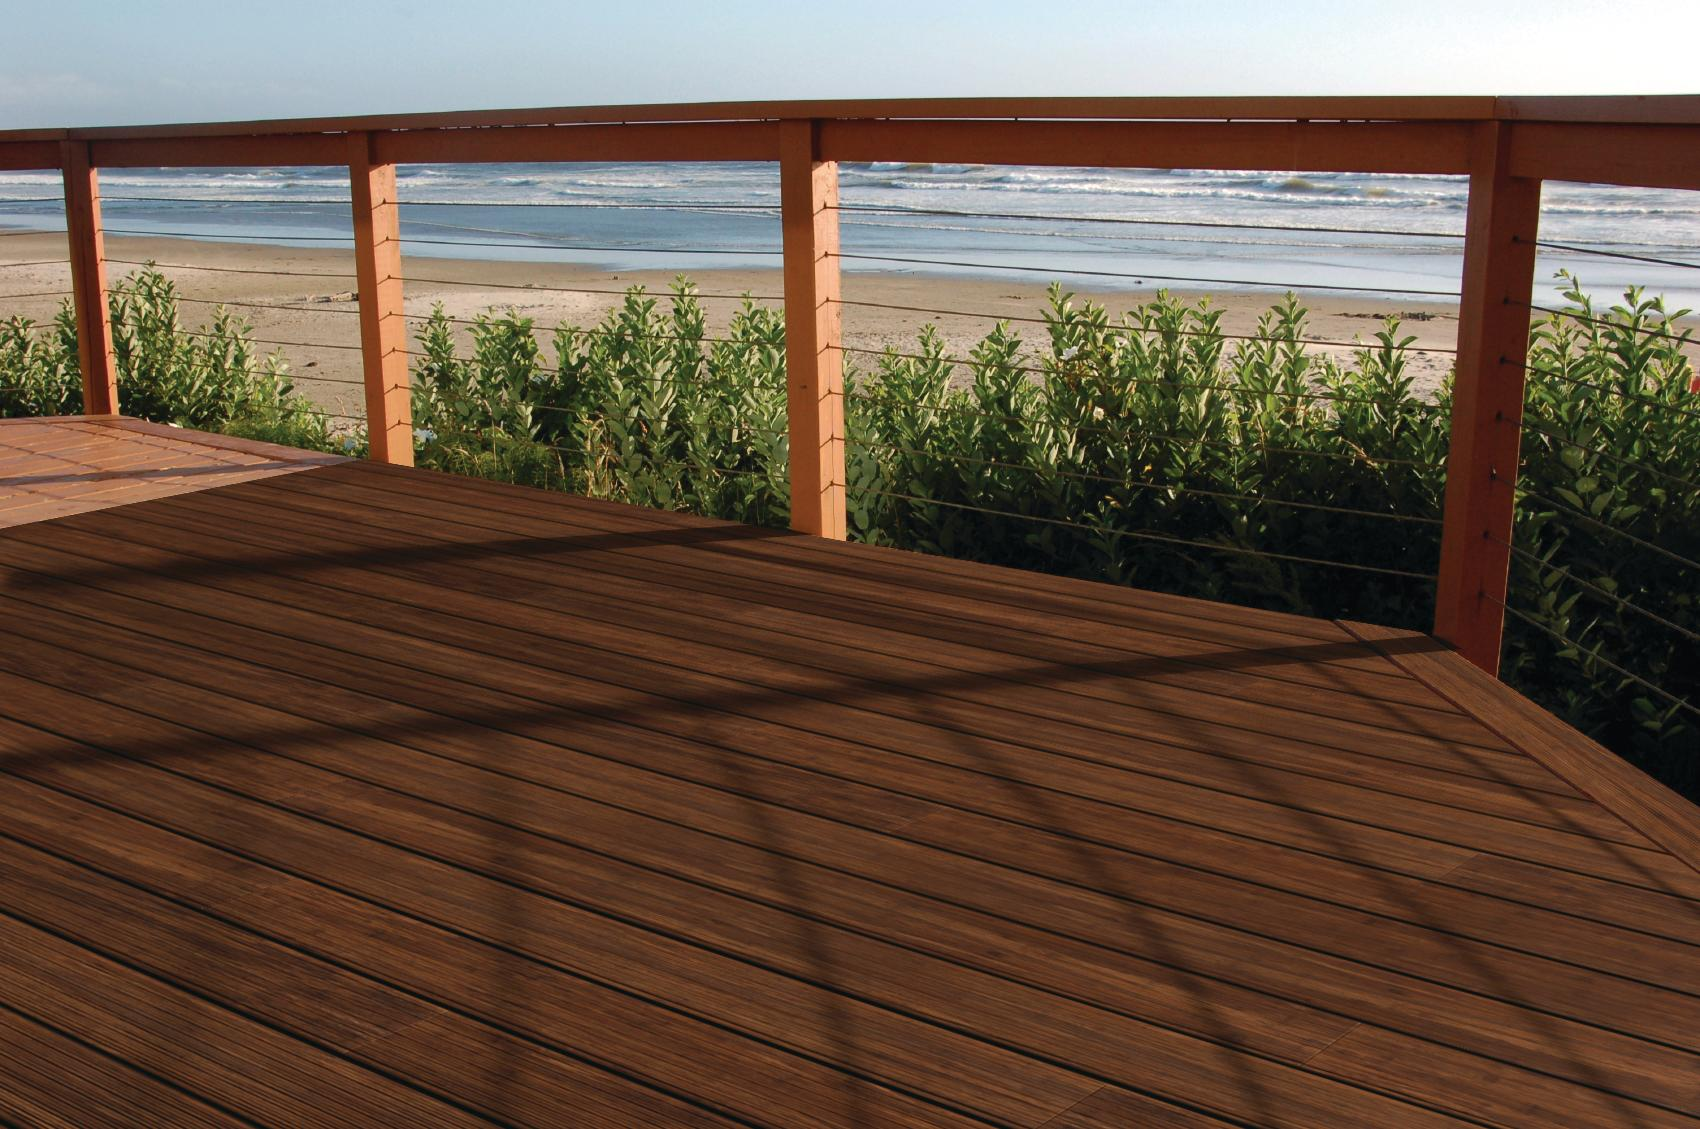 Sustainably simple building a deck with bamboo flooring for Bamboo flooring outdoor decking